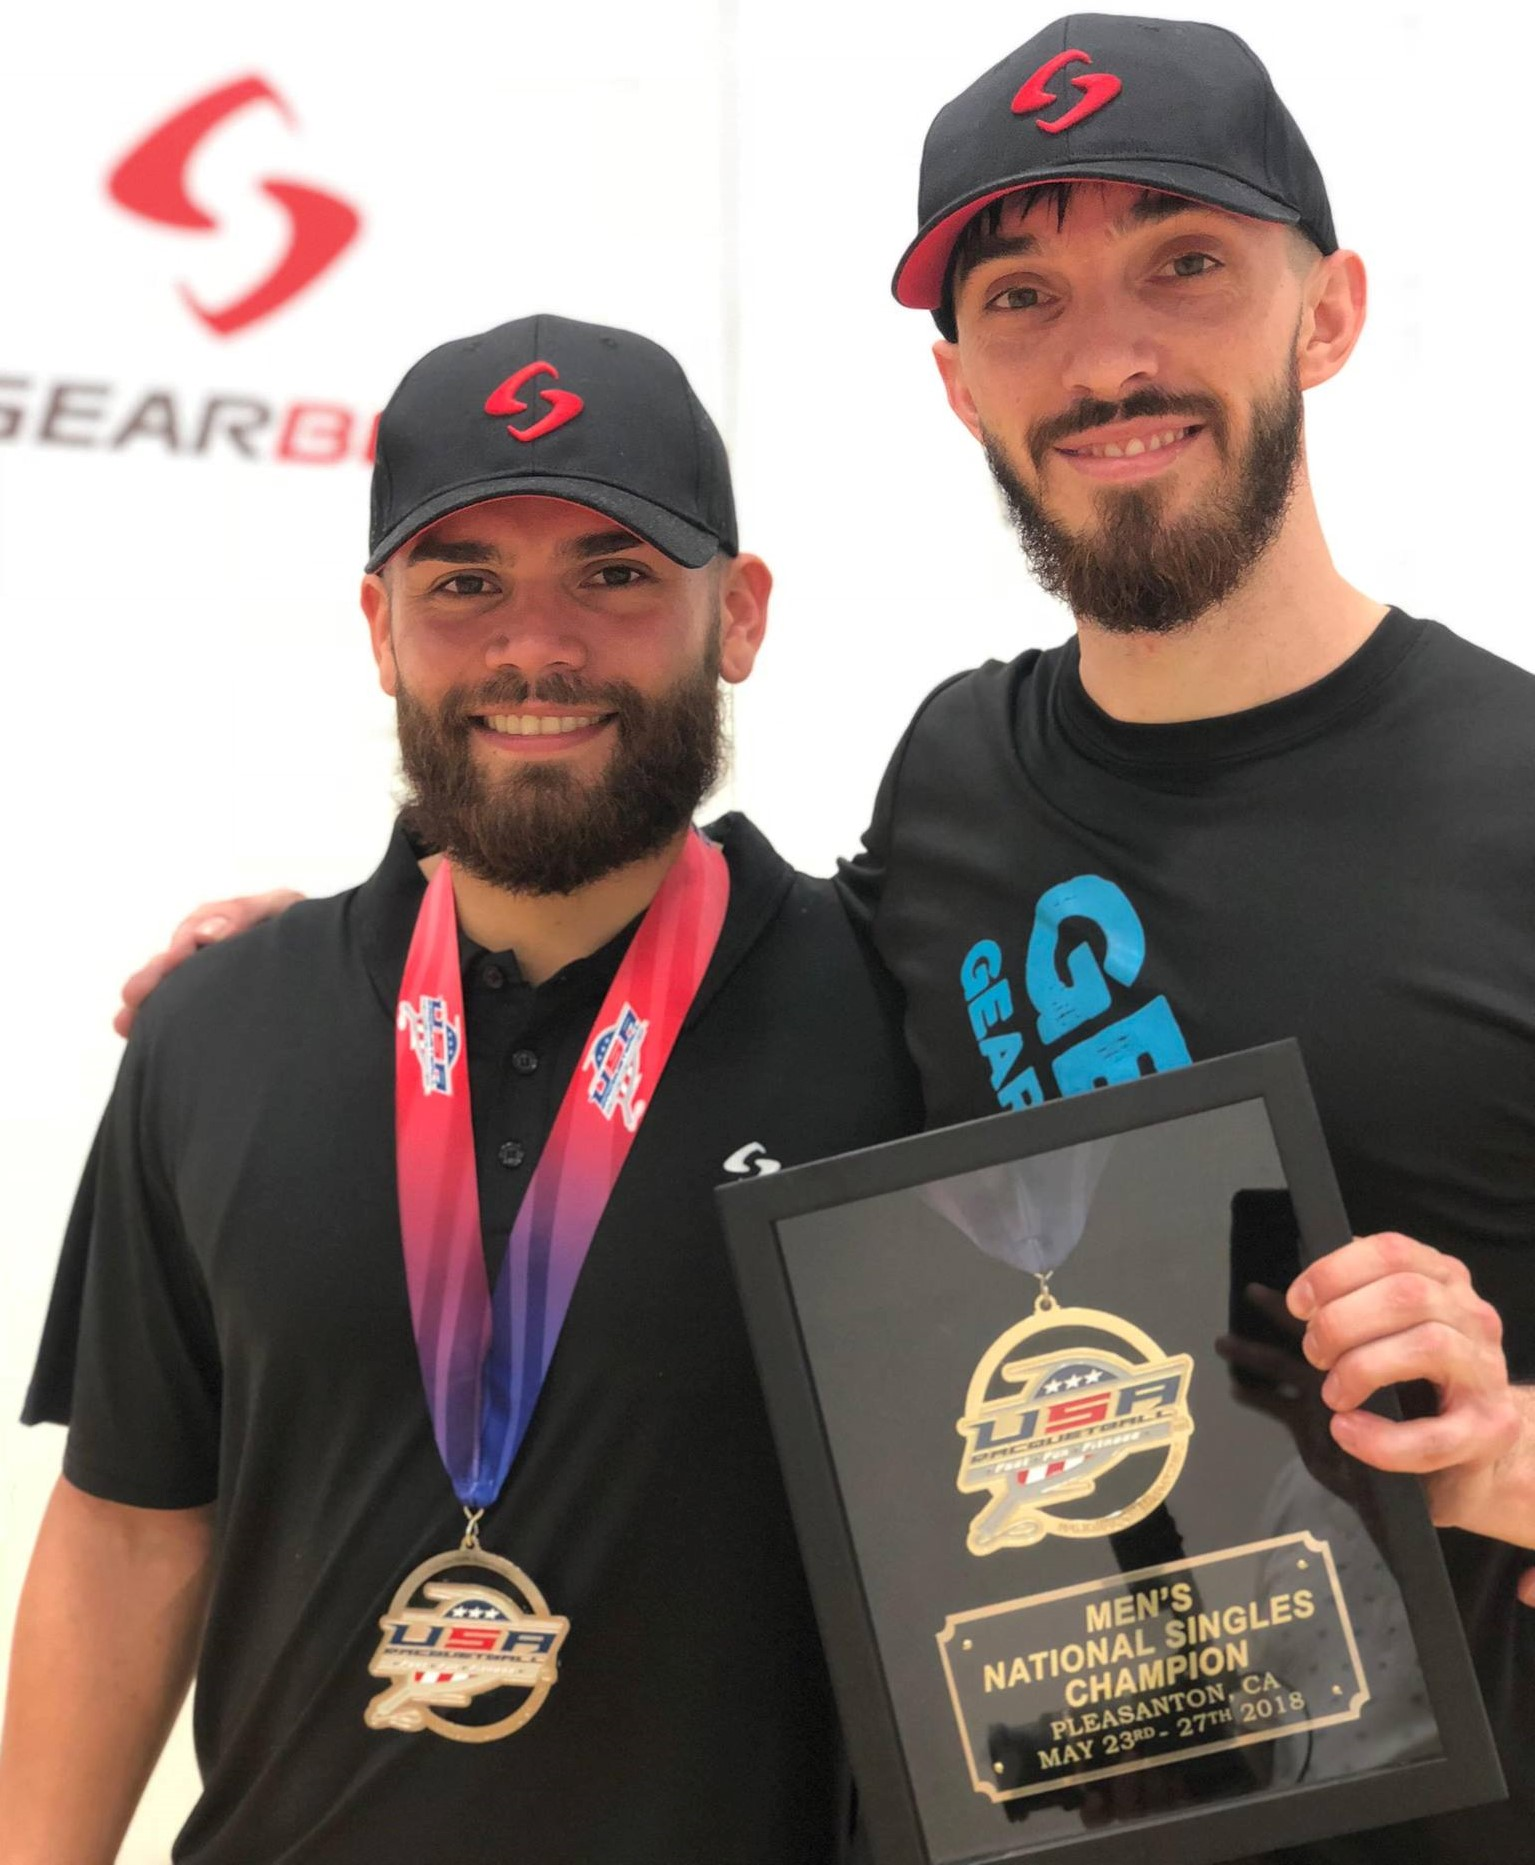 2018 USA Racquetball National Singles Champion Bobby Horn